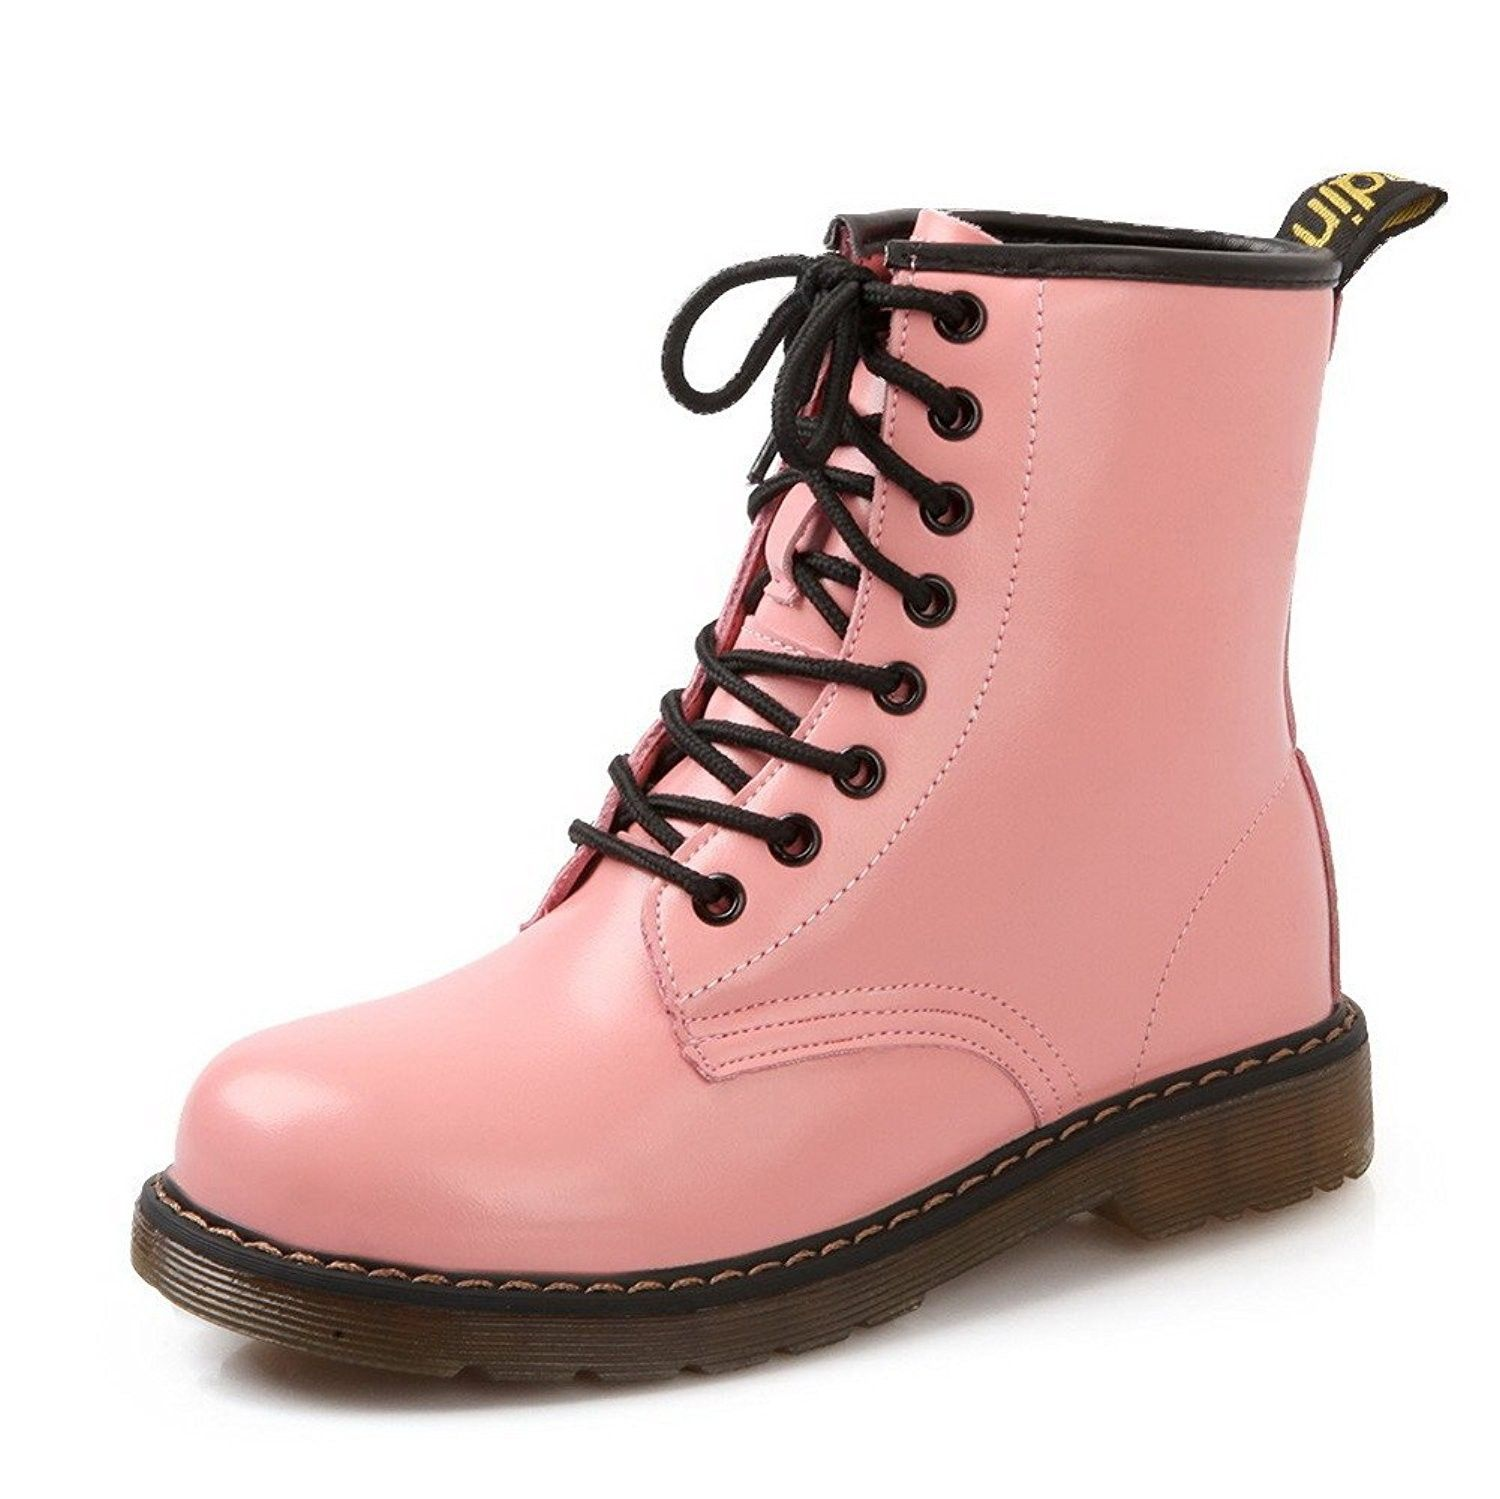 a8f8d04c5ab Womens Low Heels Low Top Solid Cow Leather Martin Boots - Pink ...